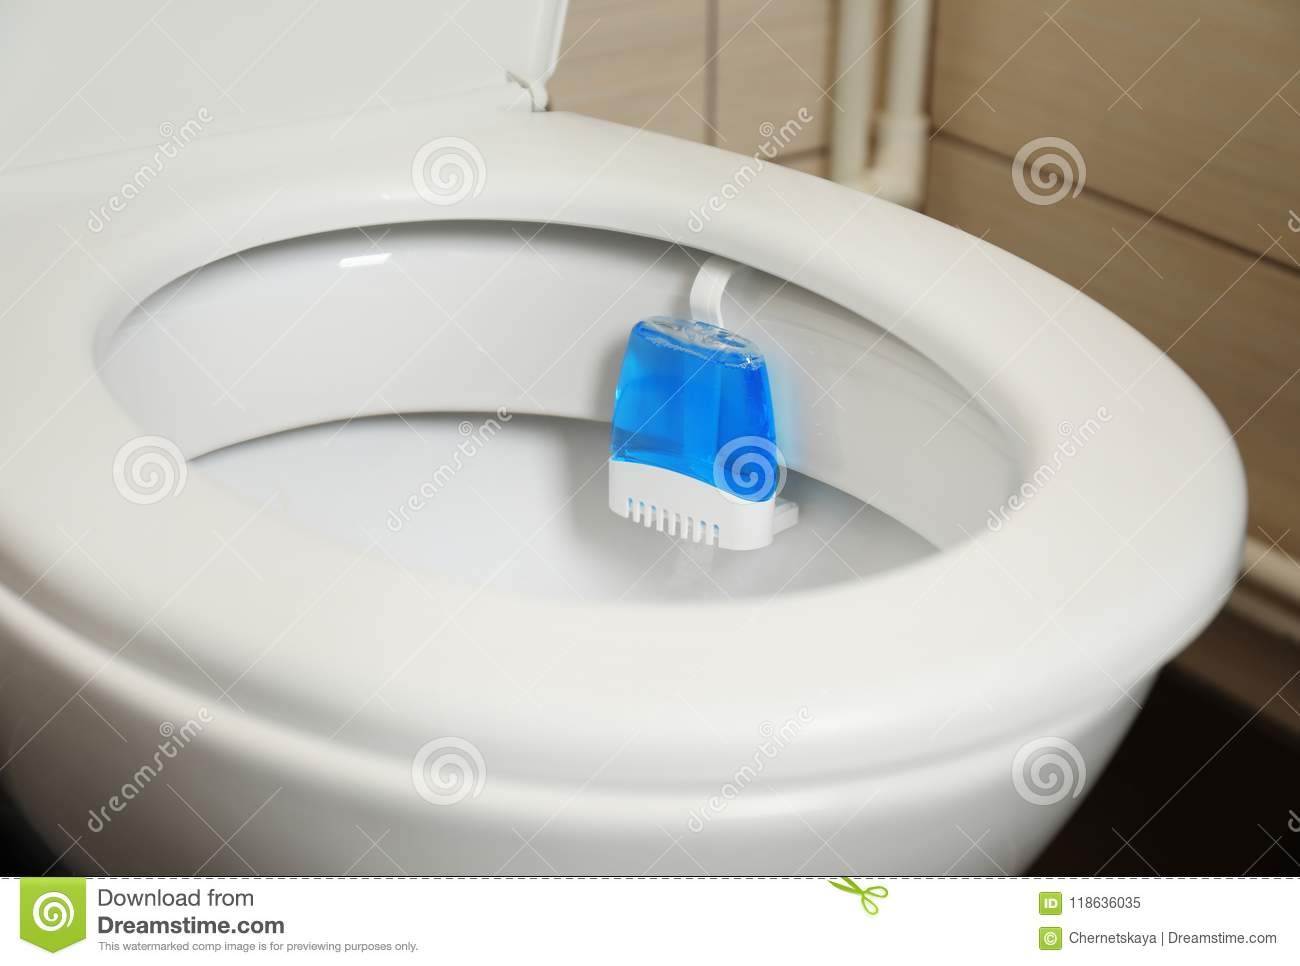 Bathroom Air Freshener Toilet With Rim Block In Bathroom Stock Image Image Of Domestic